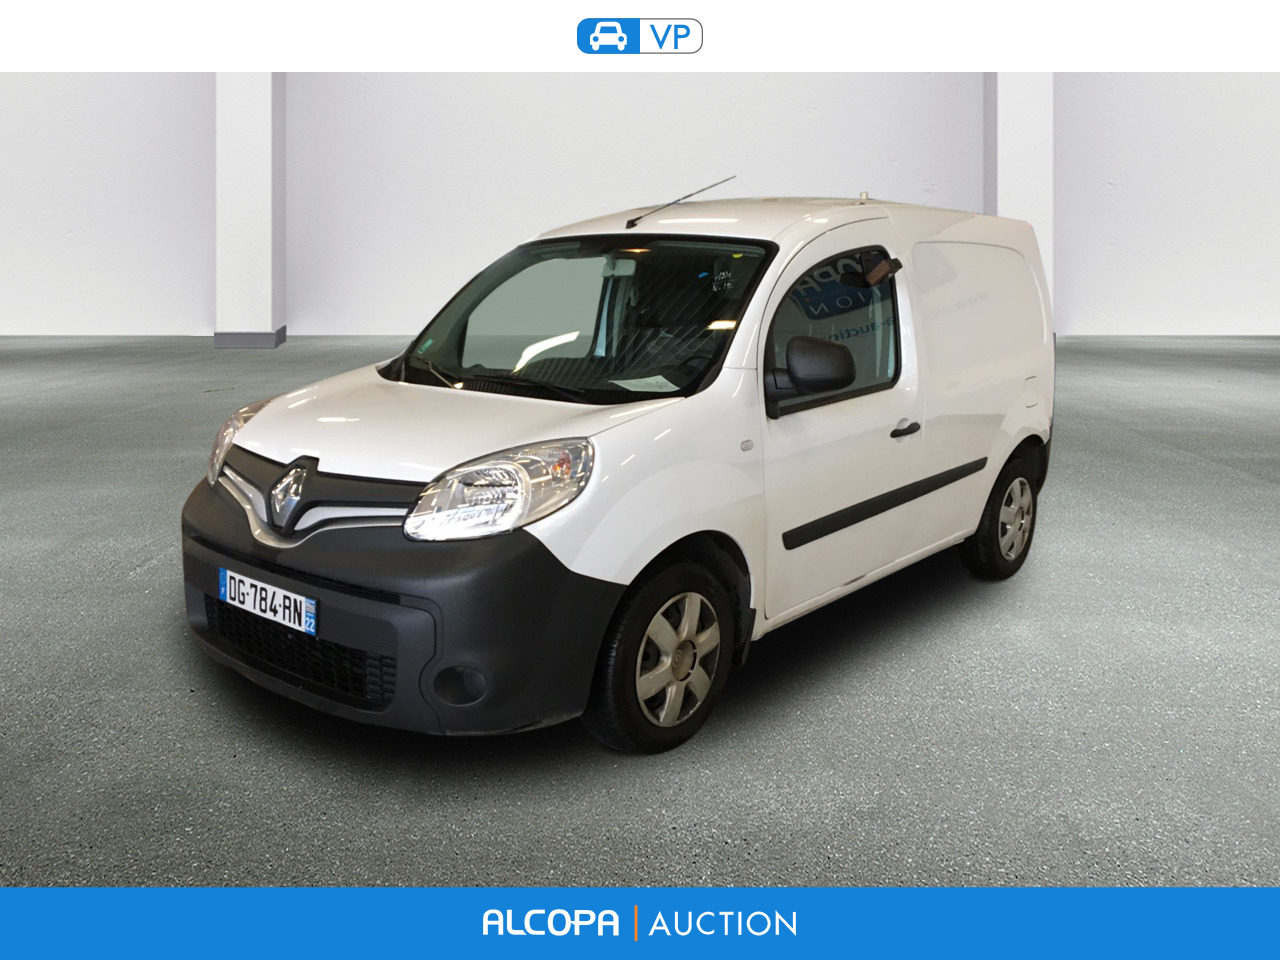 renault kangoo kangoo express 1 5 dci 90 confort alcopa auction. Black Bedroom Furniture Sets. Home Design Ideas